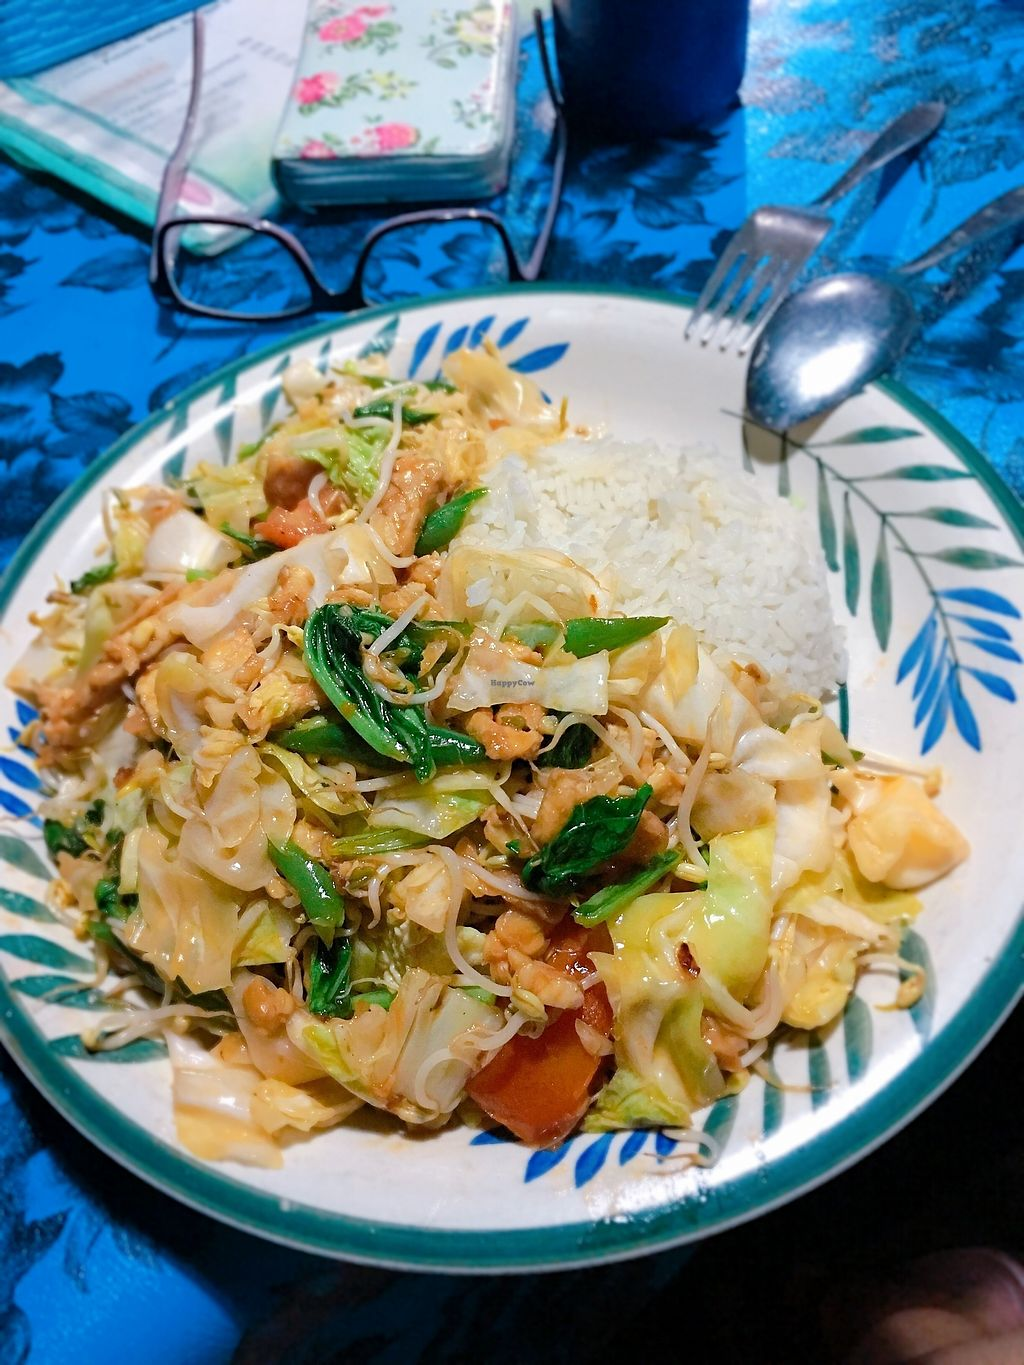 """Photo of Martini's Warung  by <a href=""""/members/profile/AnthonyPolicano"""">AnthonyPolicano</a> <br/>Fried veg w tofu & tempeh.. Huge & made with ❤️  <br/> July 21, 2017  - <a href='/contact/abuse/image/96302/282905'>Report</a>"""